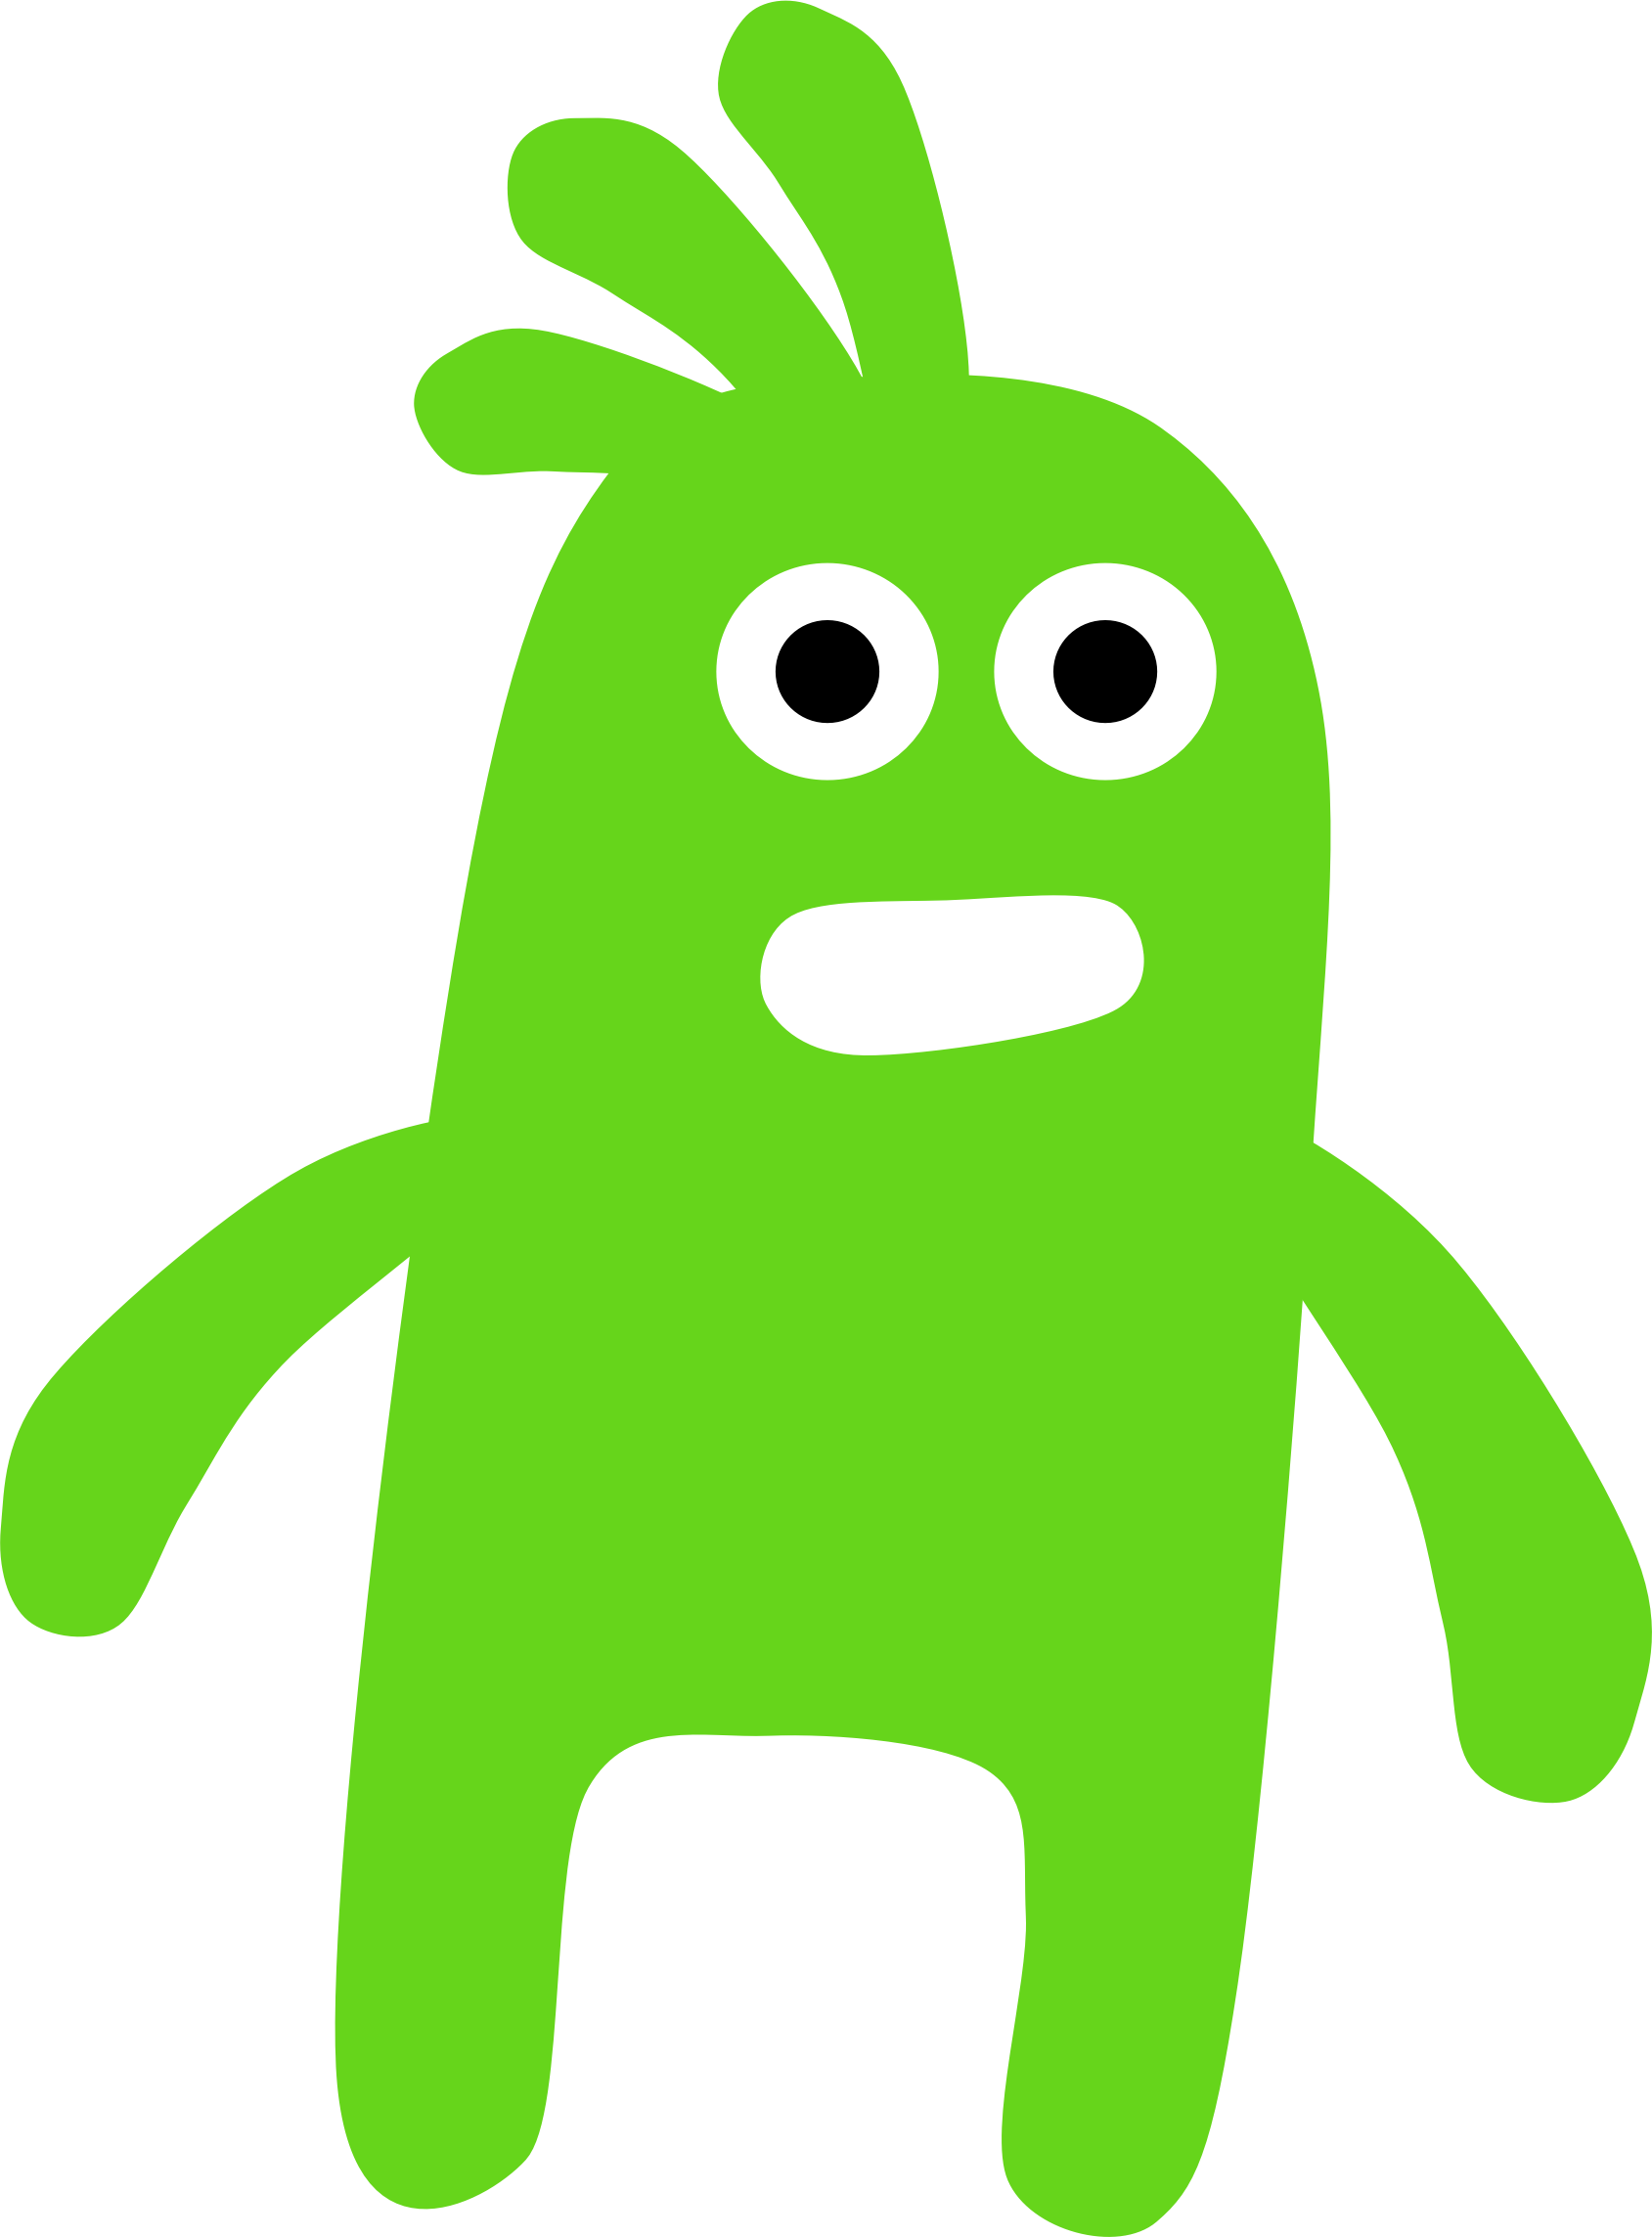 Monsters clip green monster. By scout a worried